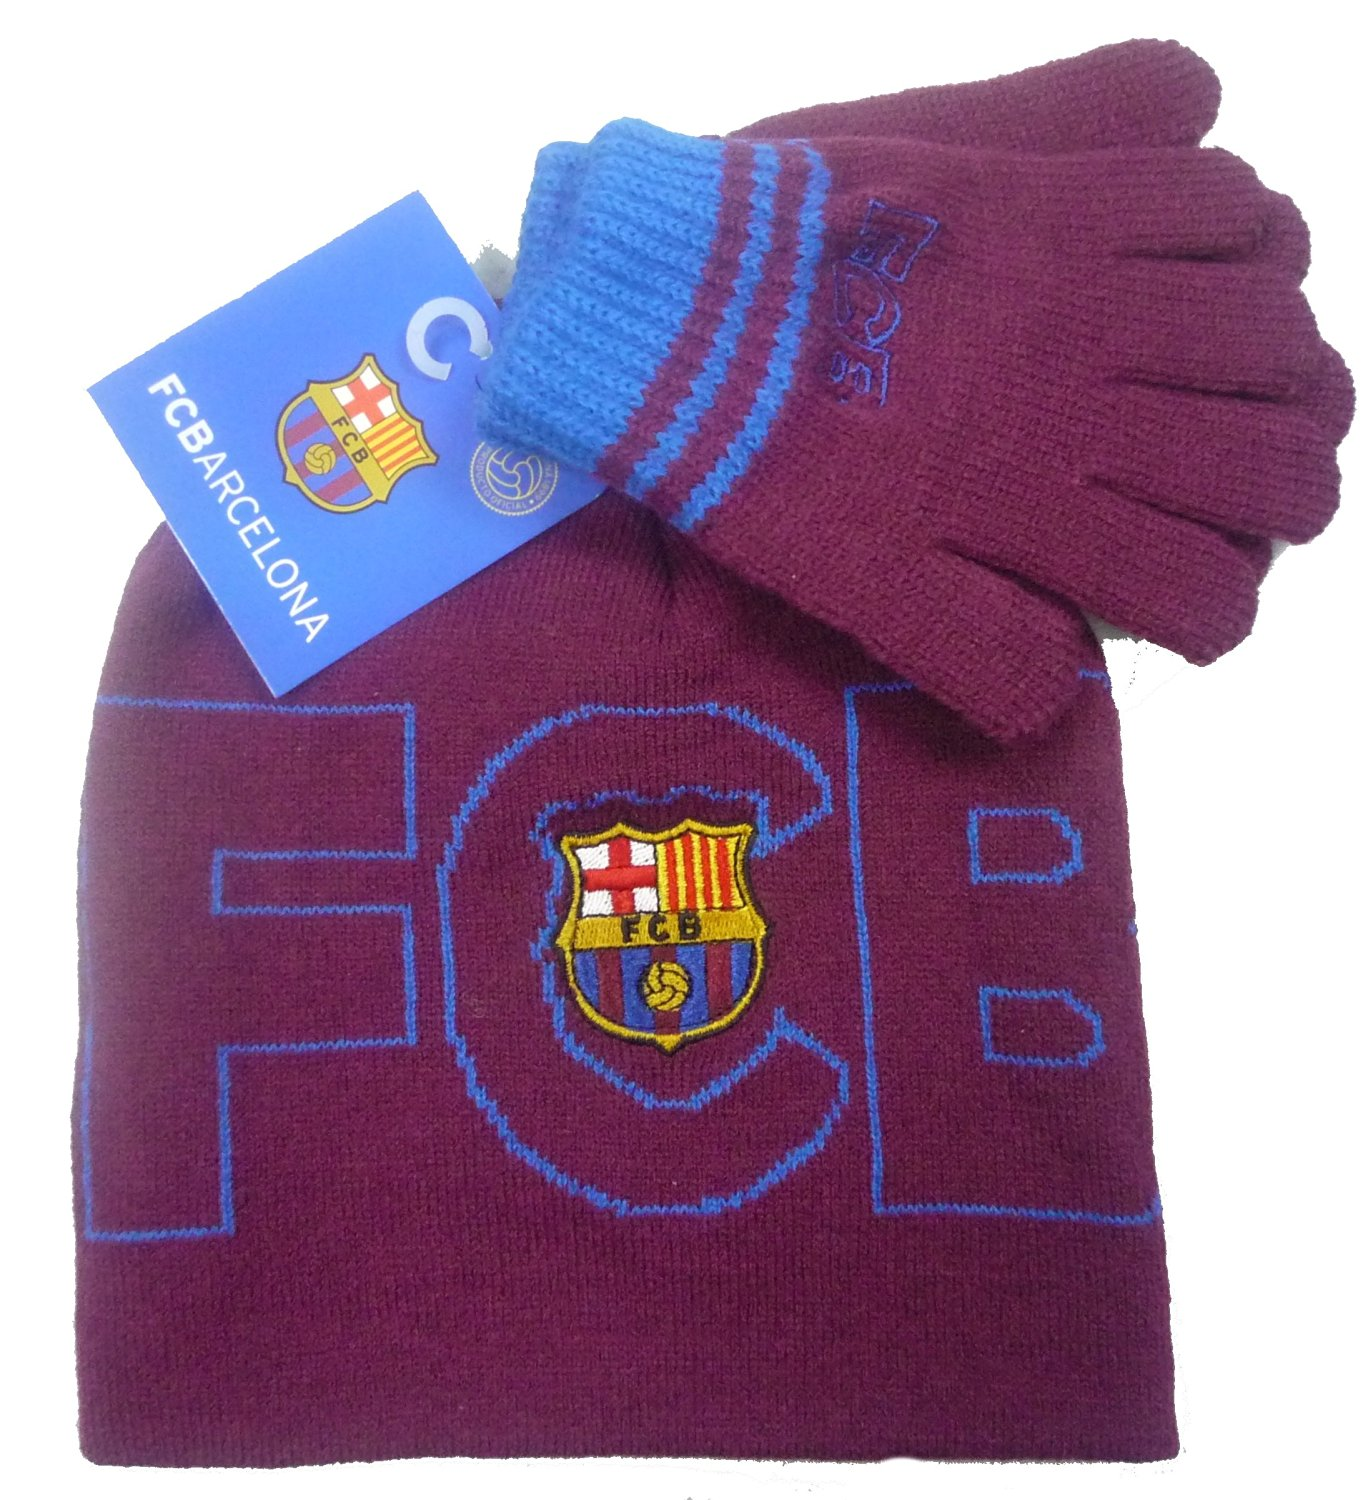 a3178e9d2f9 Get Quotations · Official Licensed FC Barcelona Childrens Maroon Beanie  Gloves set - Licensed FC Barcelona Merchandise